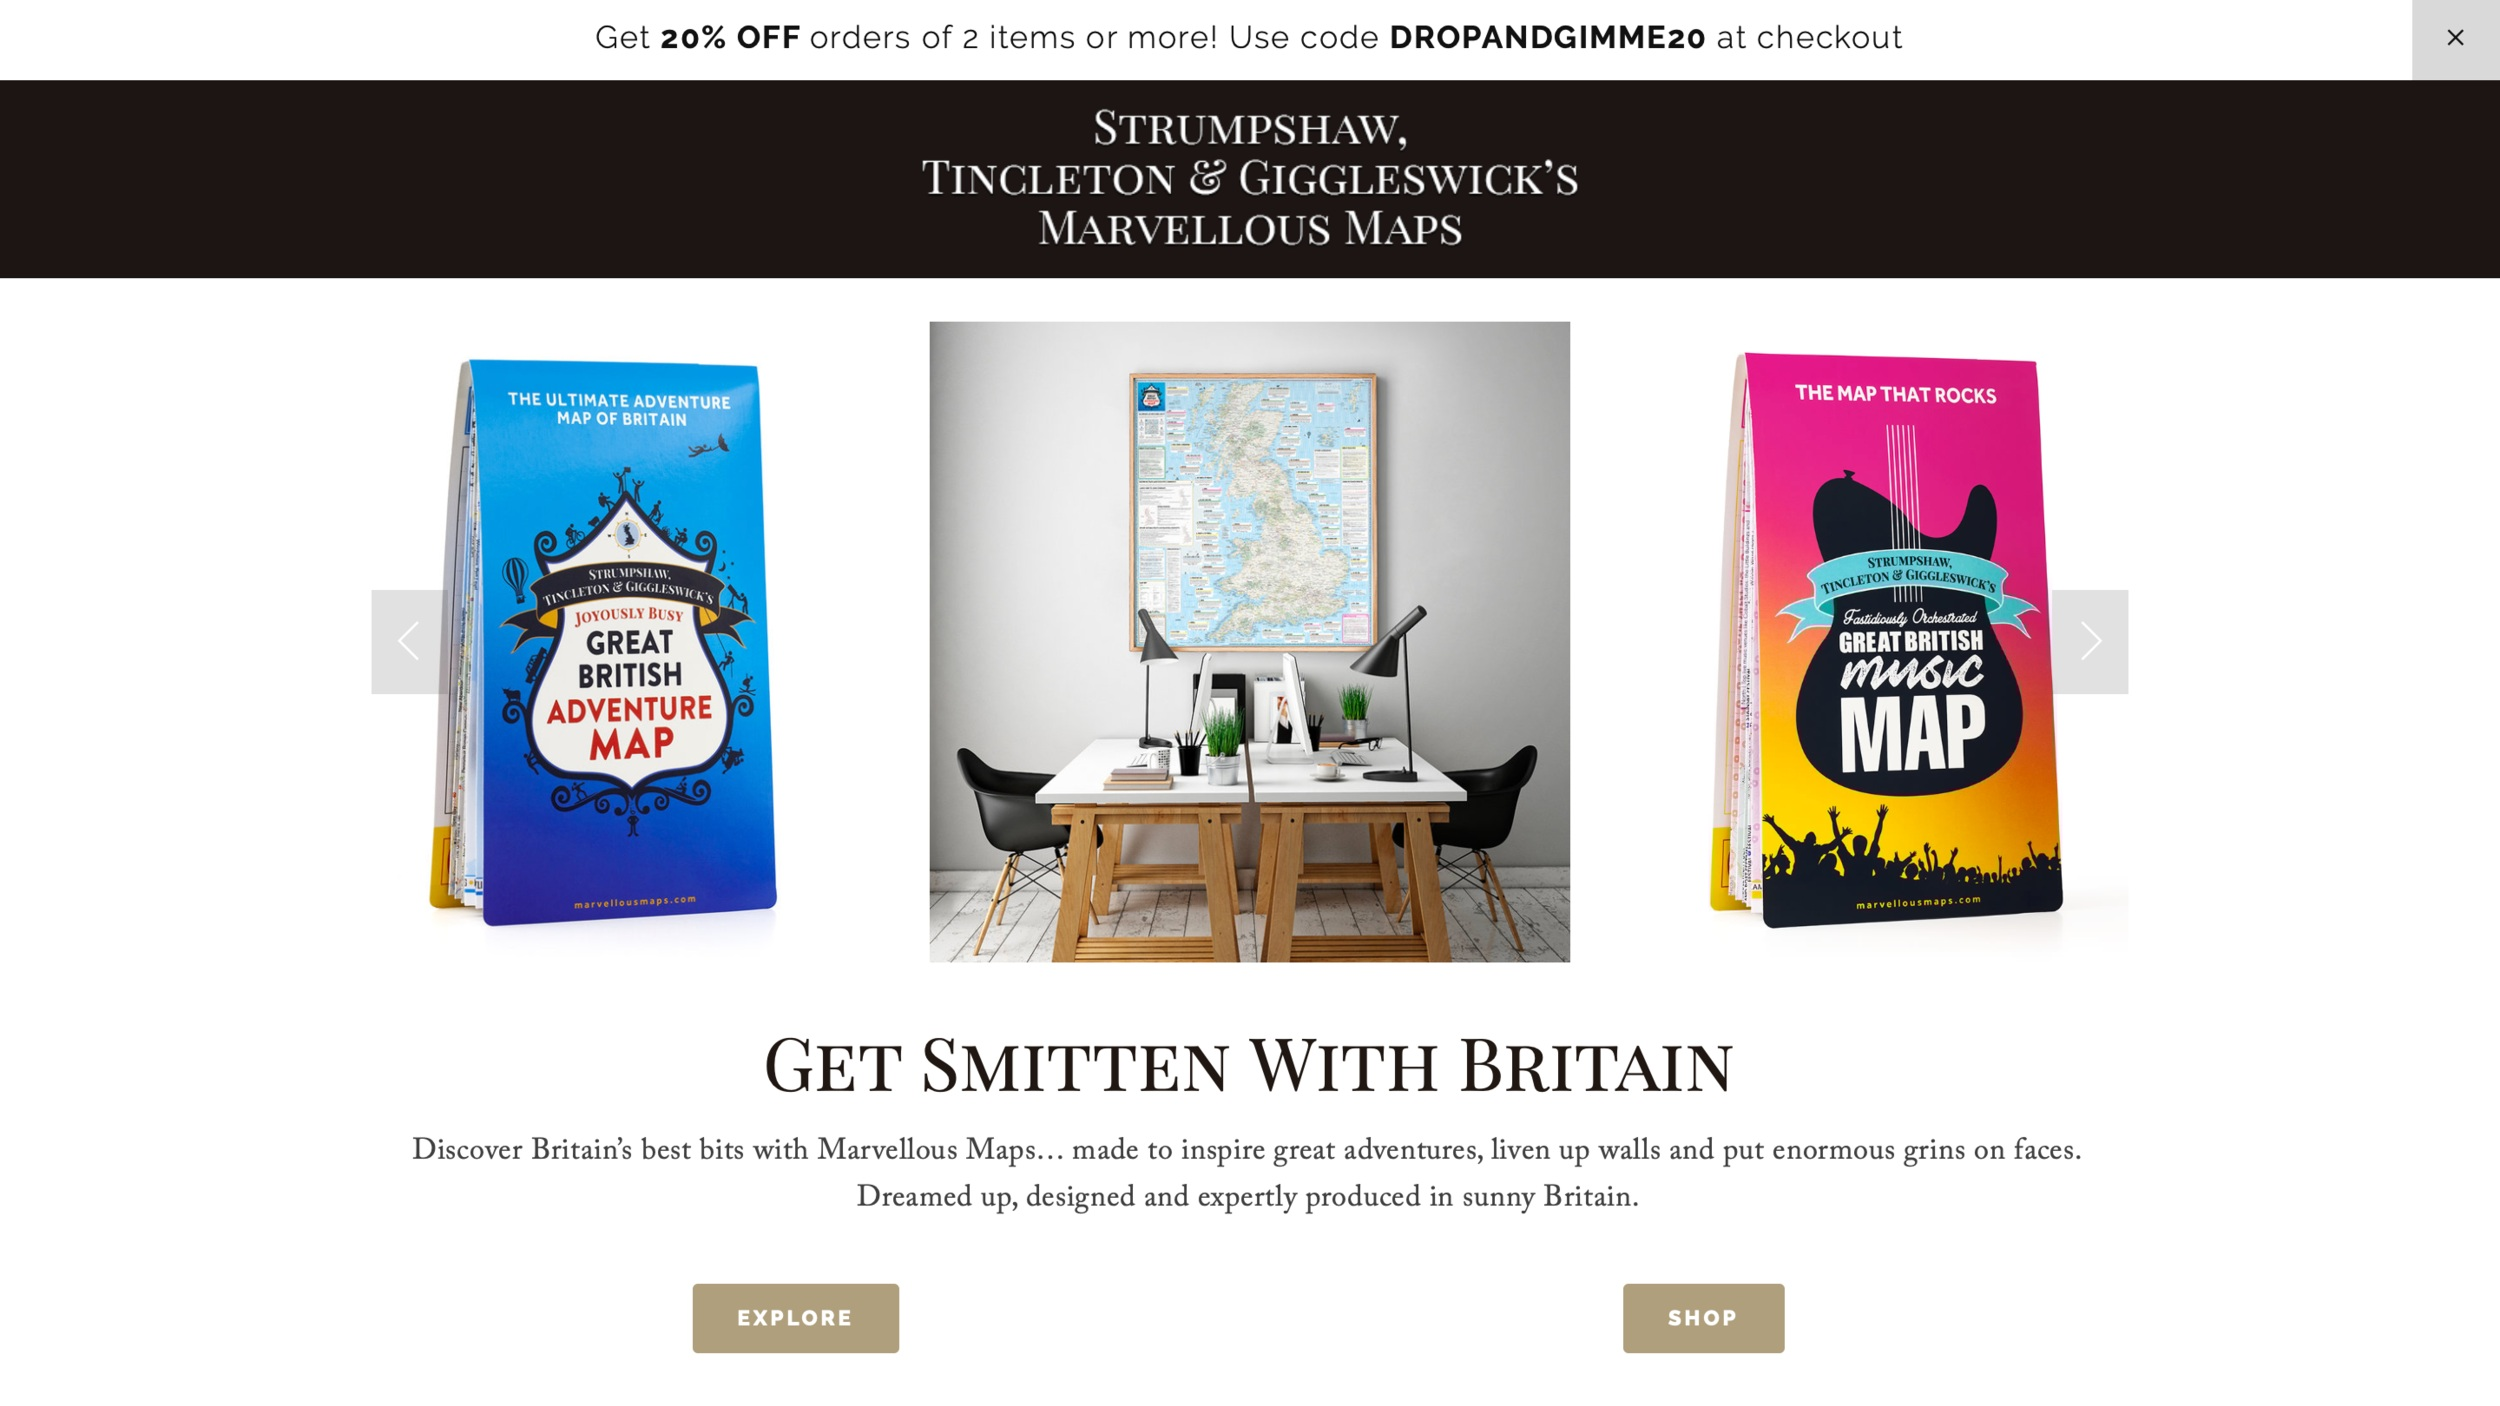 Best holiday PR agency for gifts. Gift Guides, product promotion and top gift ideas. ST&G's Marvelous Maps https://marvellousmaps.com